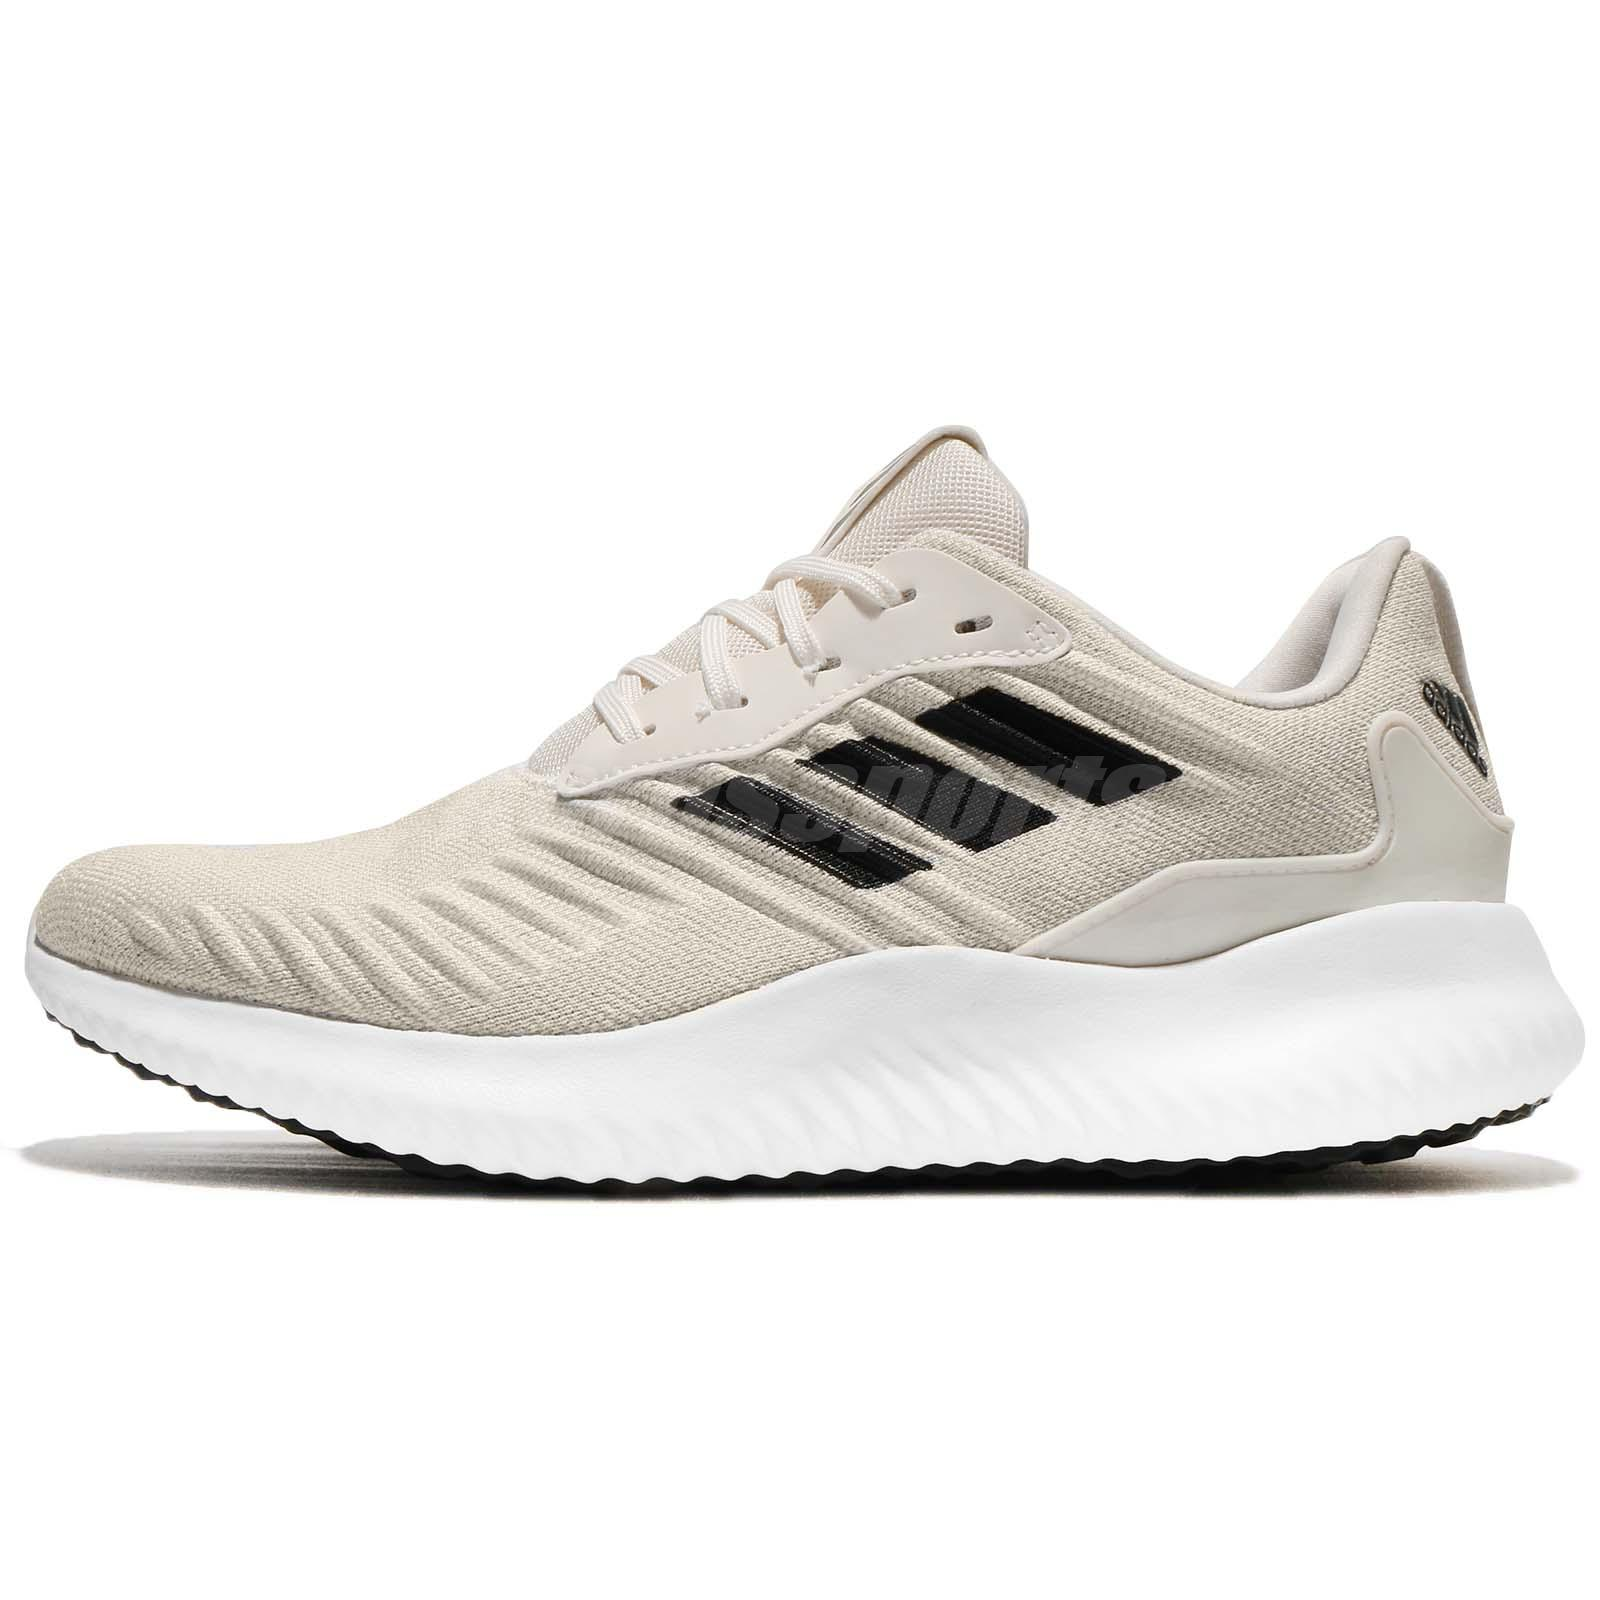 new style f1d09 1b39e ... adidas Alphabounce RC M White Black Ivory Men Running Shoes Sneakers  DA9770 ...